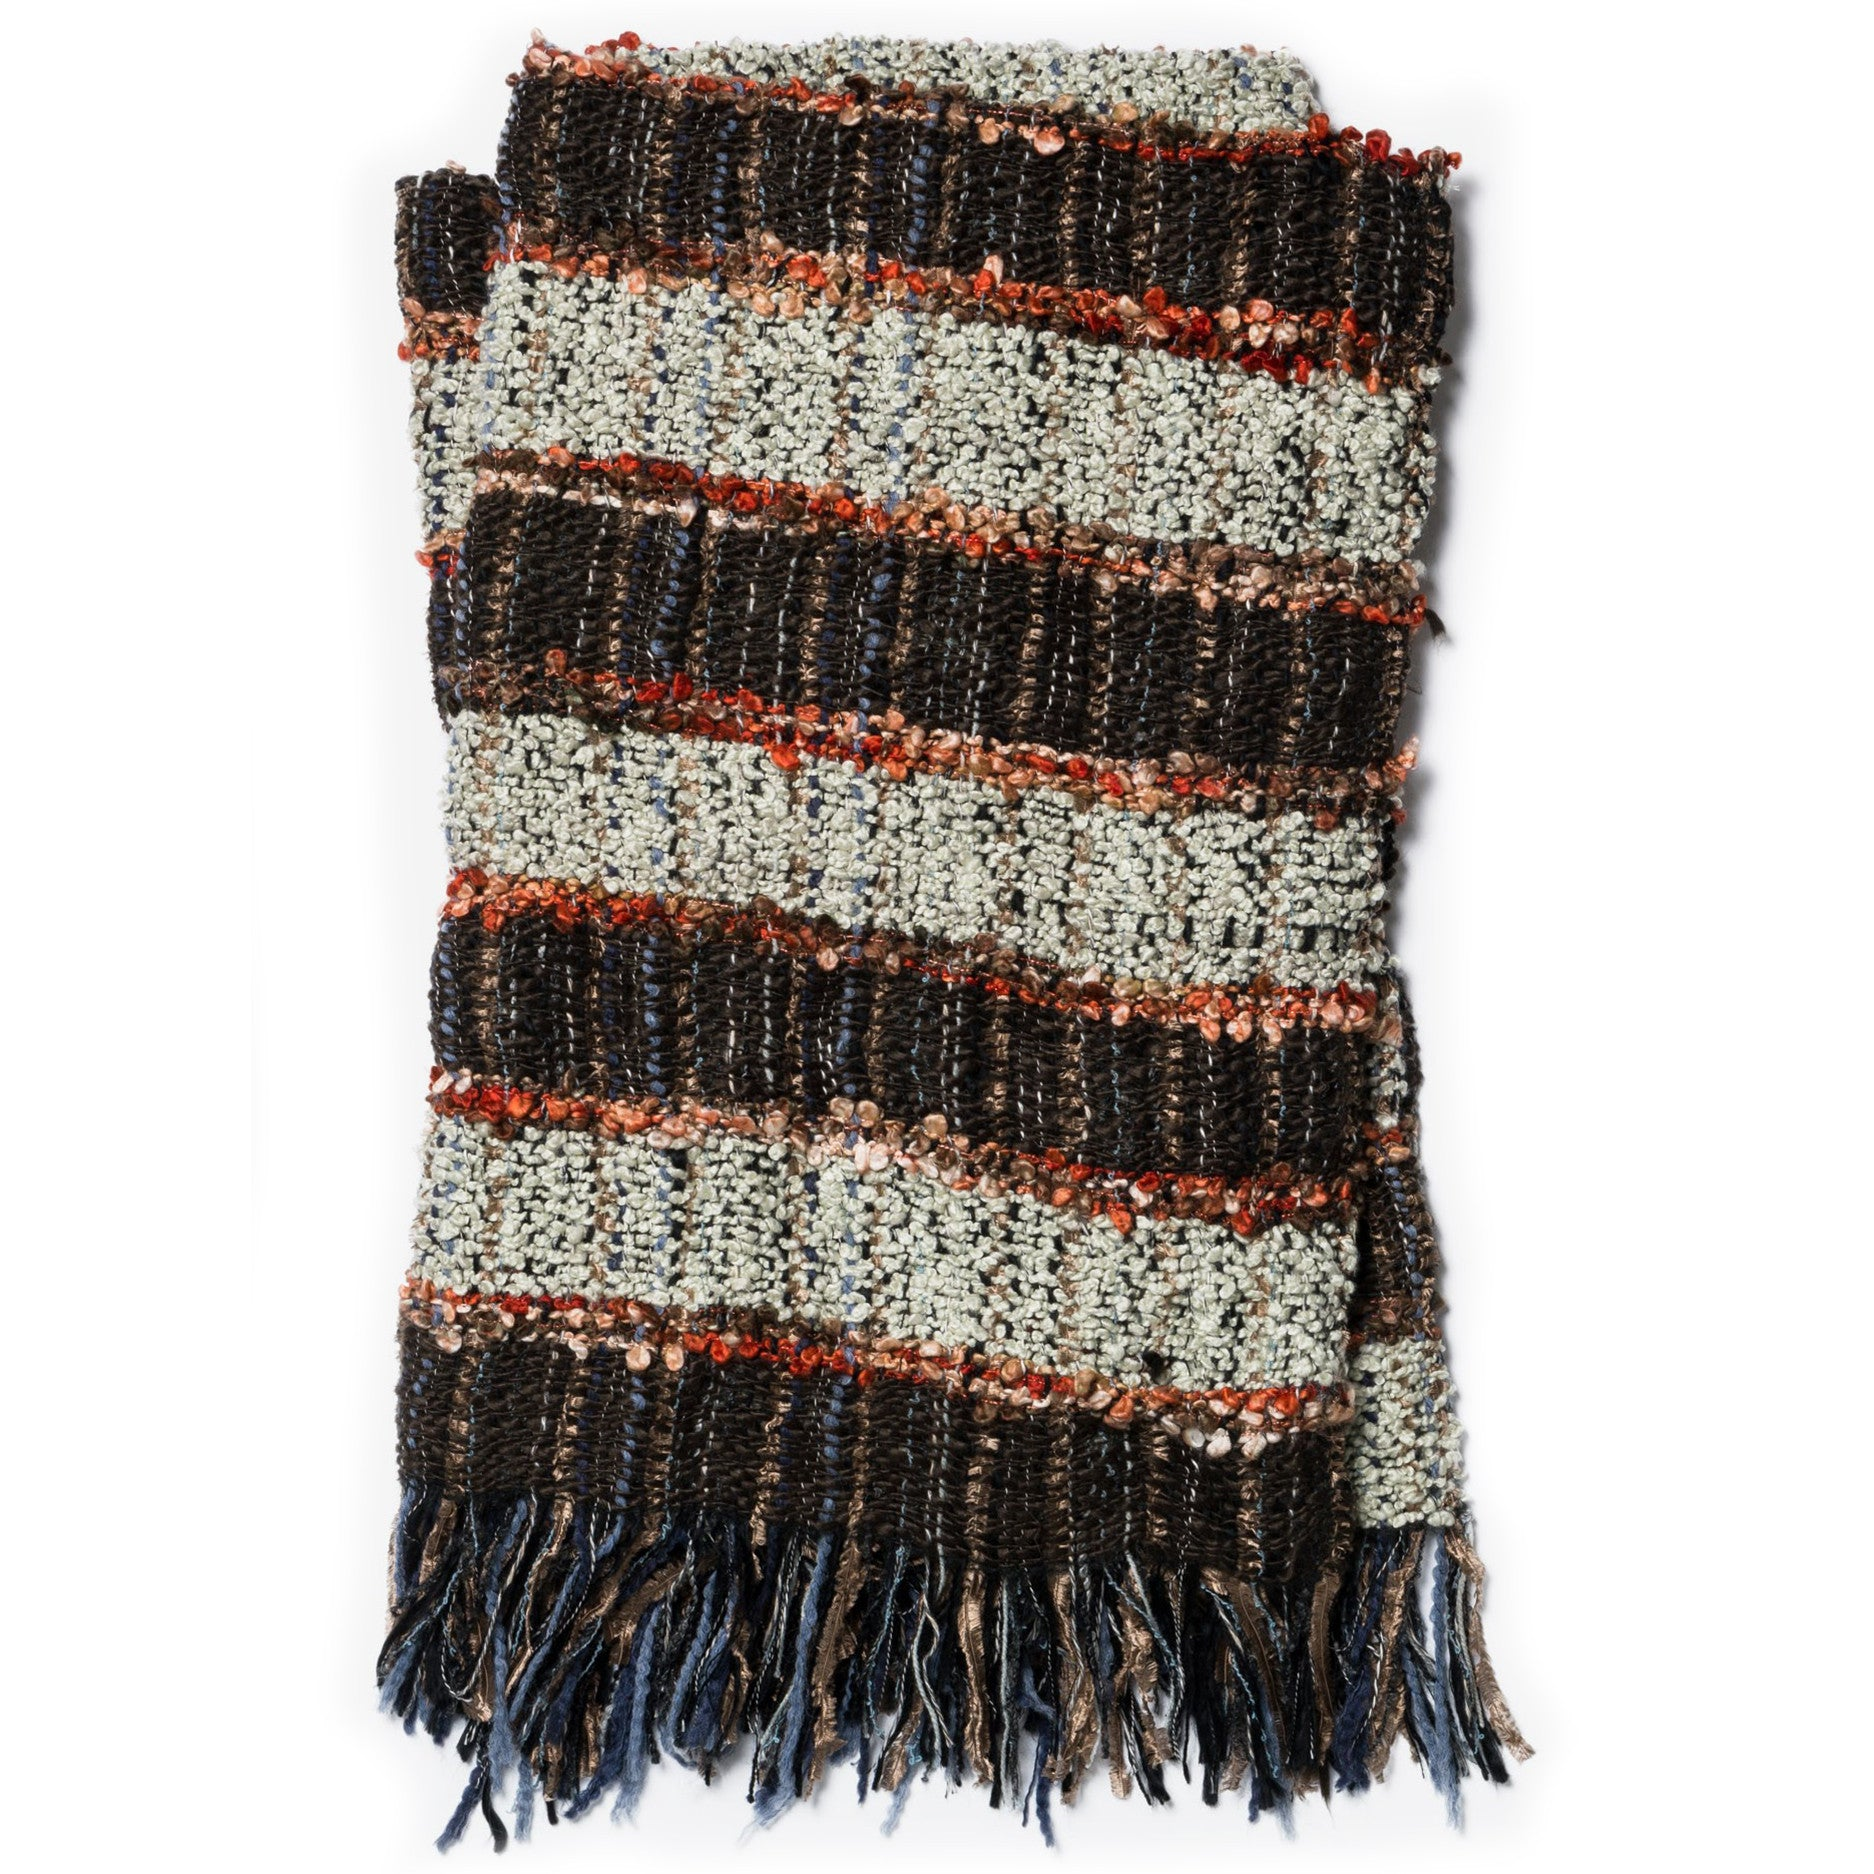 trendy woven brown and gray throw blanket